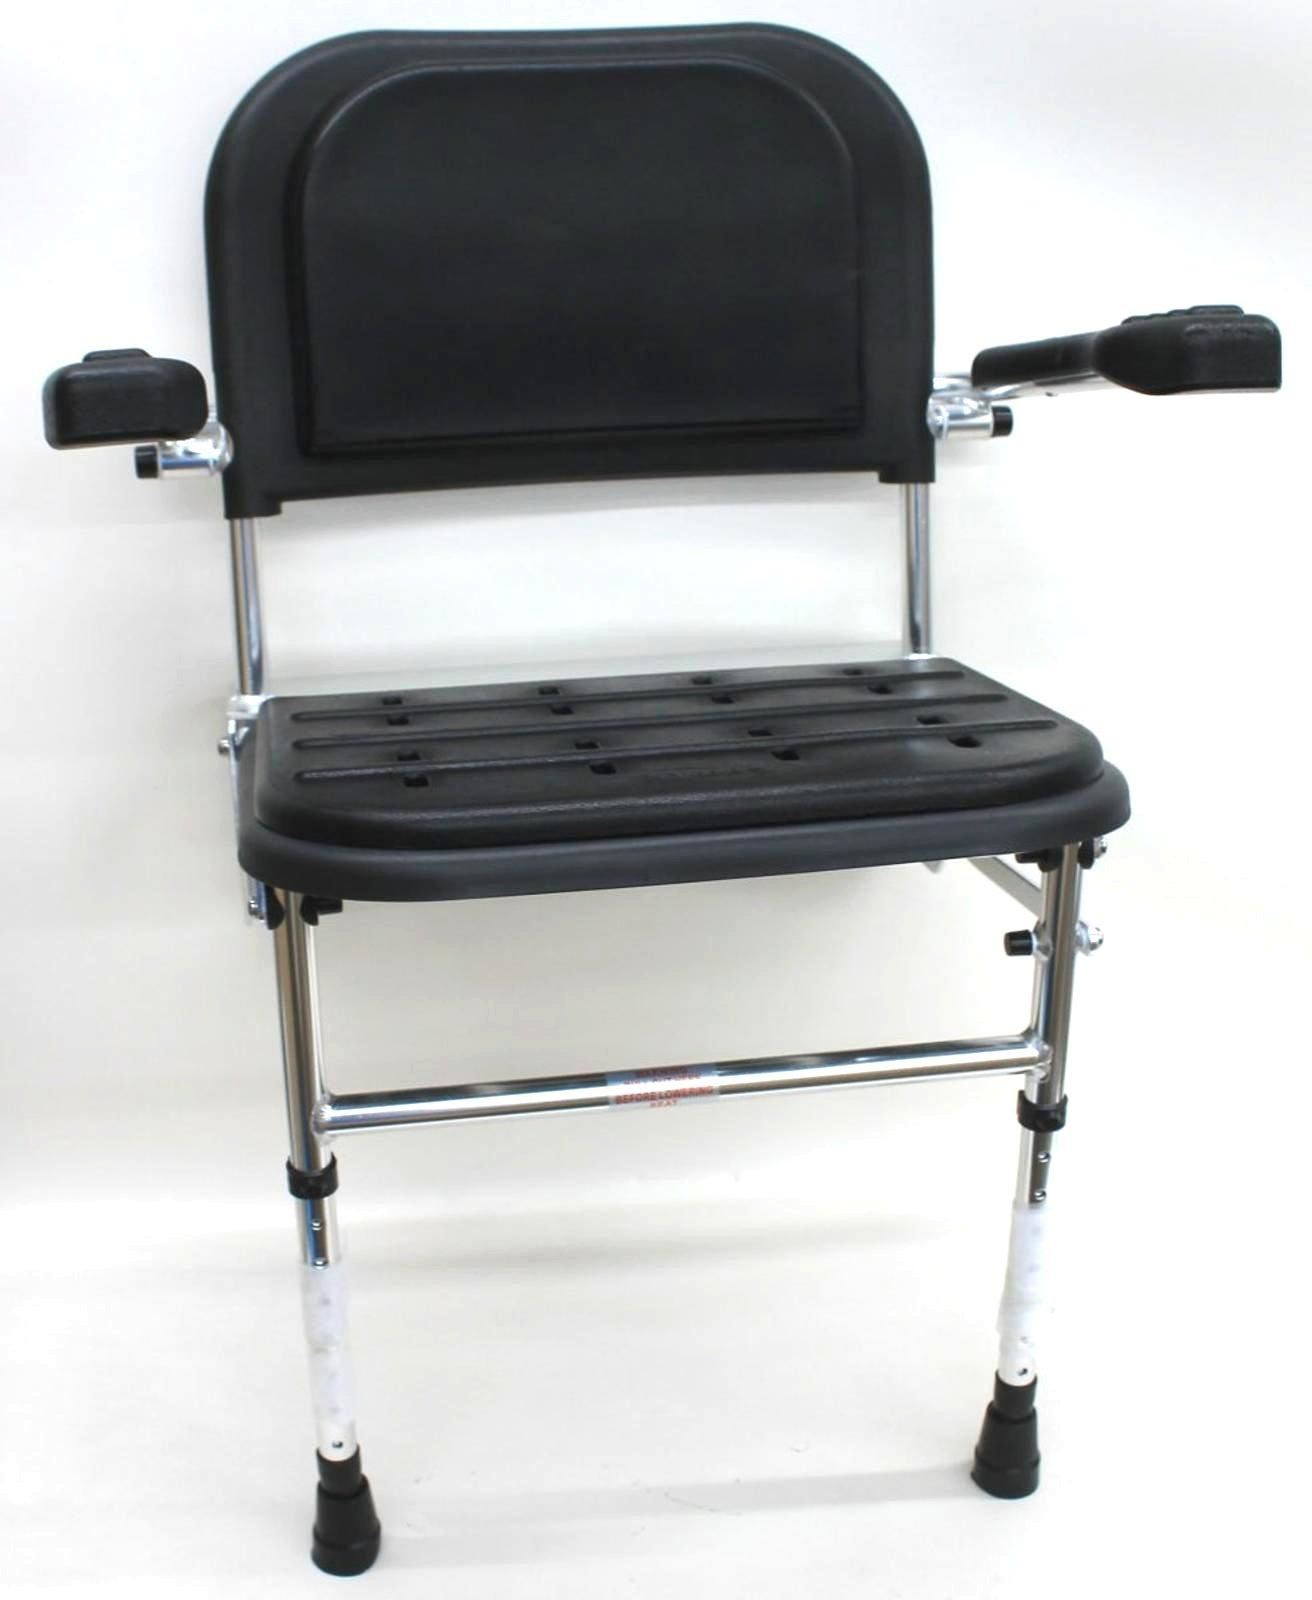 NYMAS-335004-BL-Premium-Black-Wall-Mounted-Shower-Seat-w-Legs-Back-amp-Arms-NEW